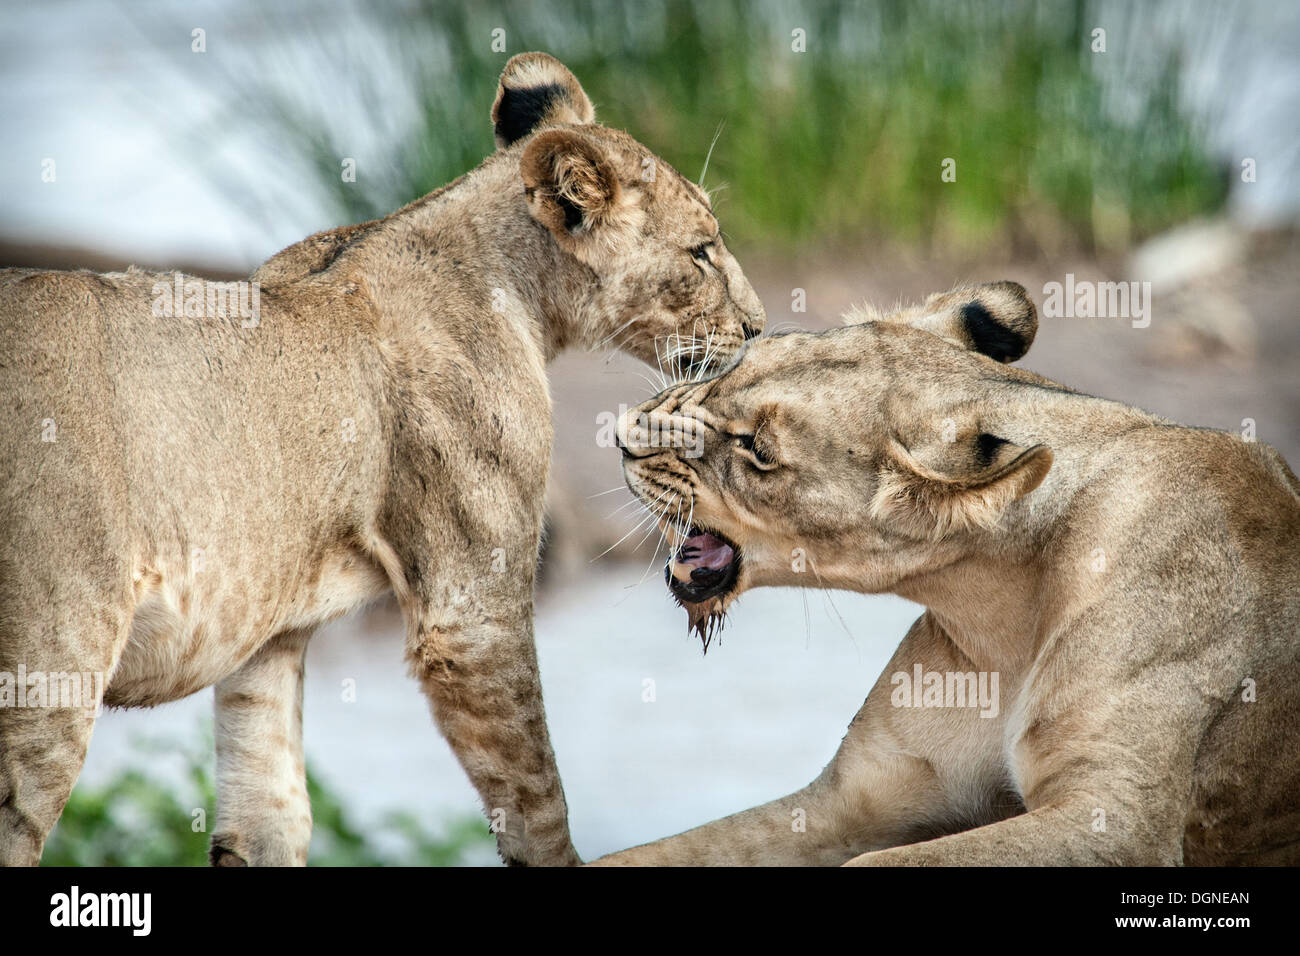 snarling lions - Stock Image